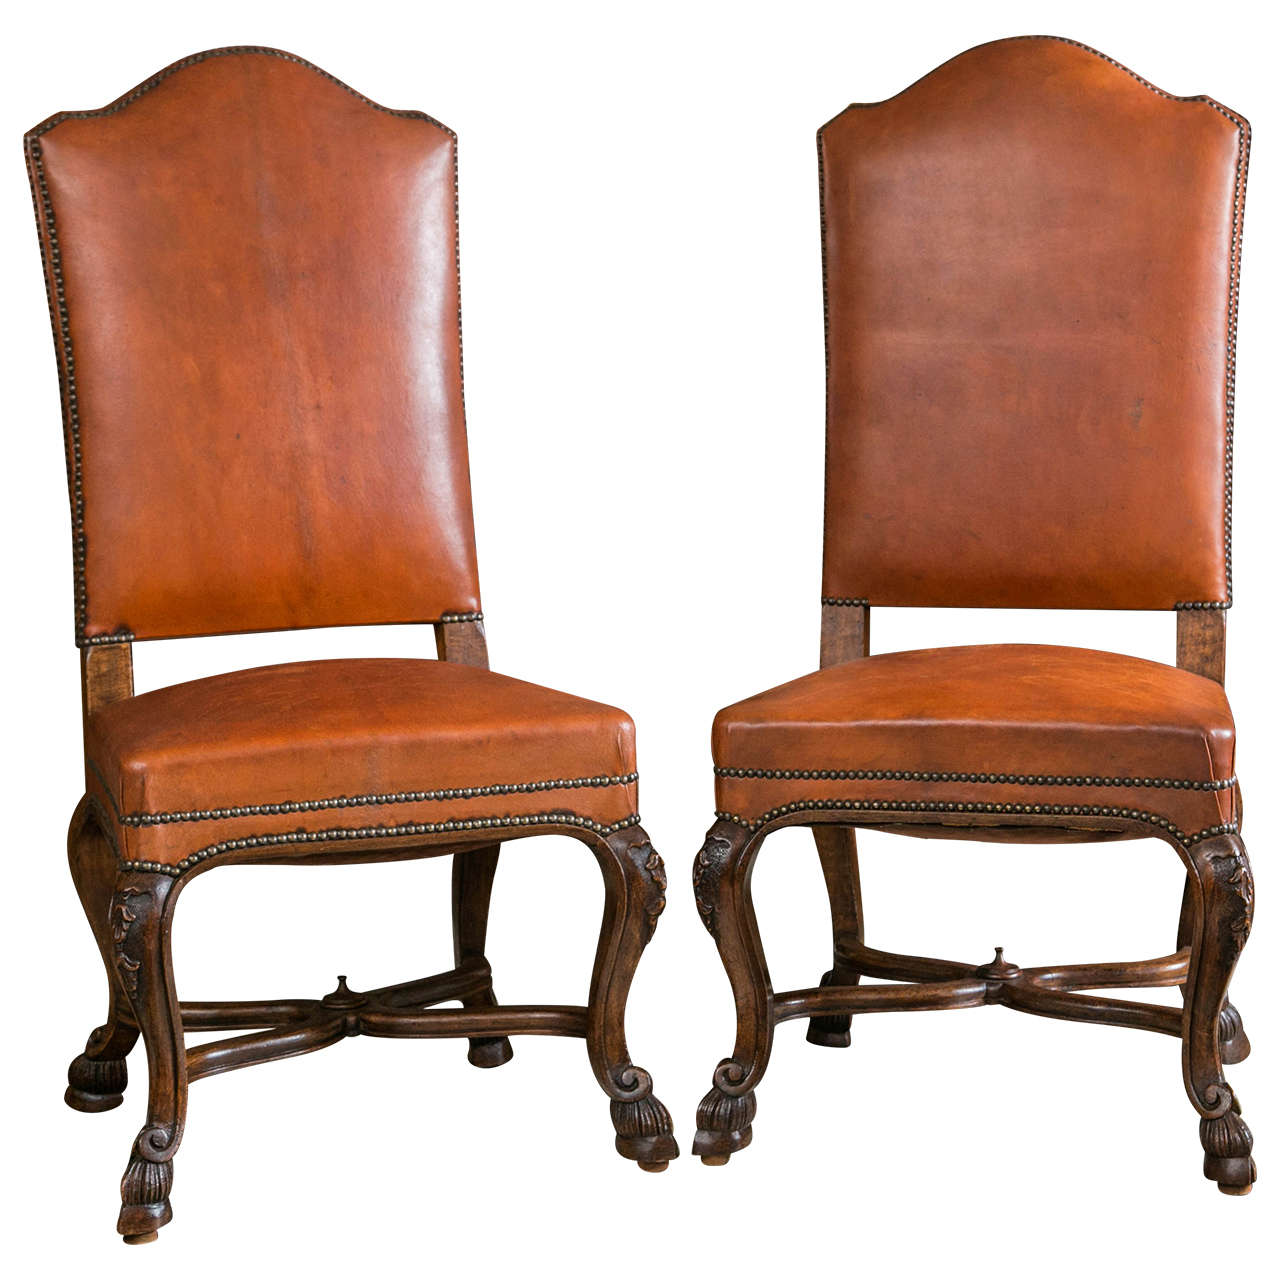 leather chairs for sale chicco polly high chair toys r us set of ten italian upholstered at